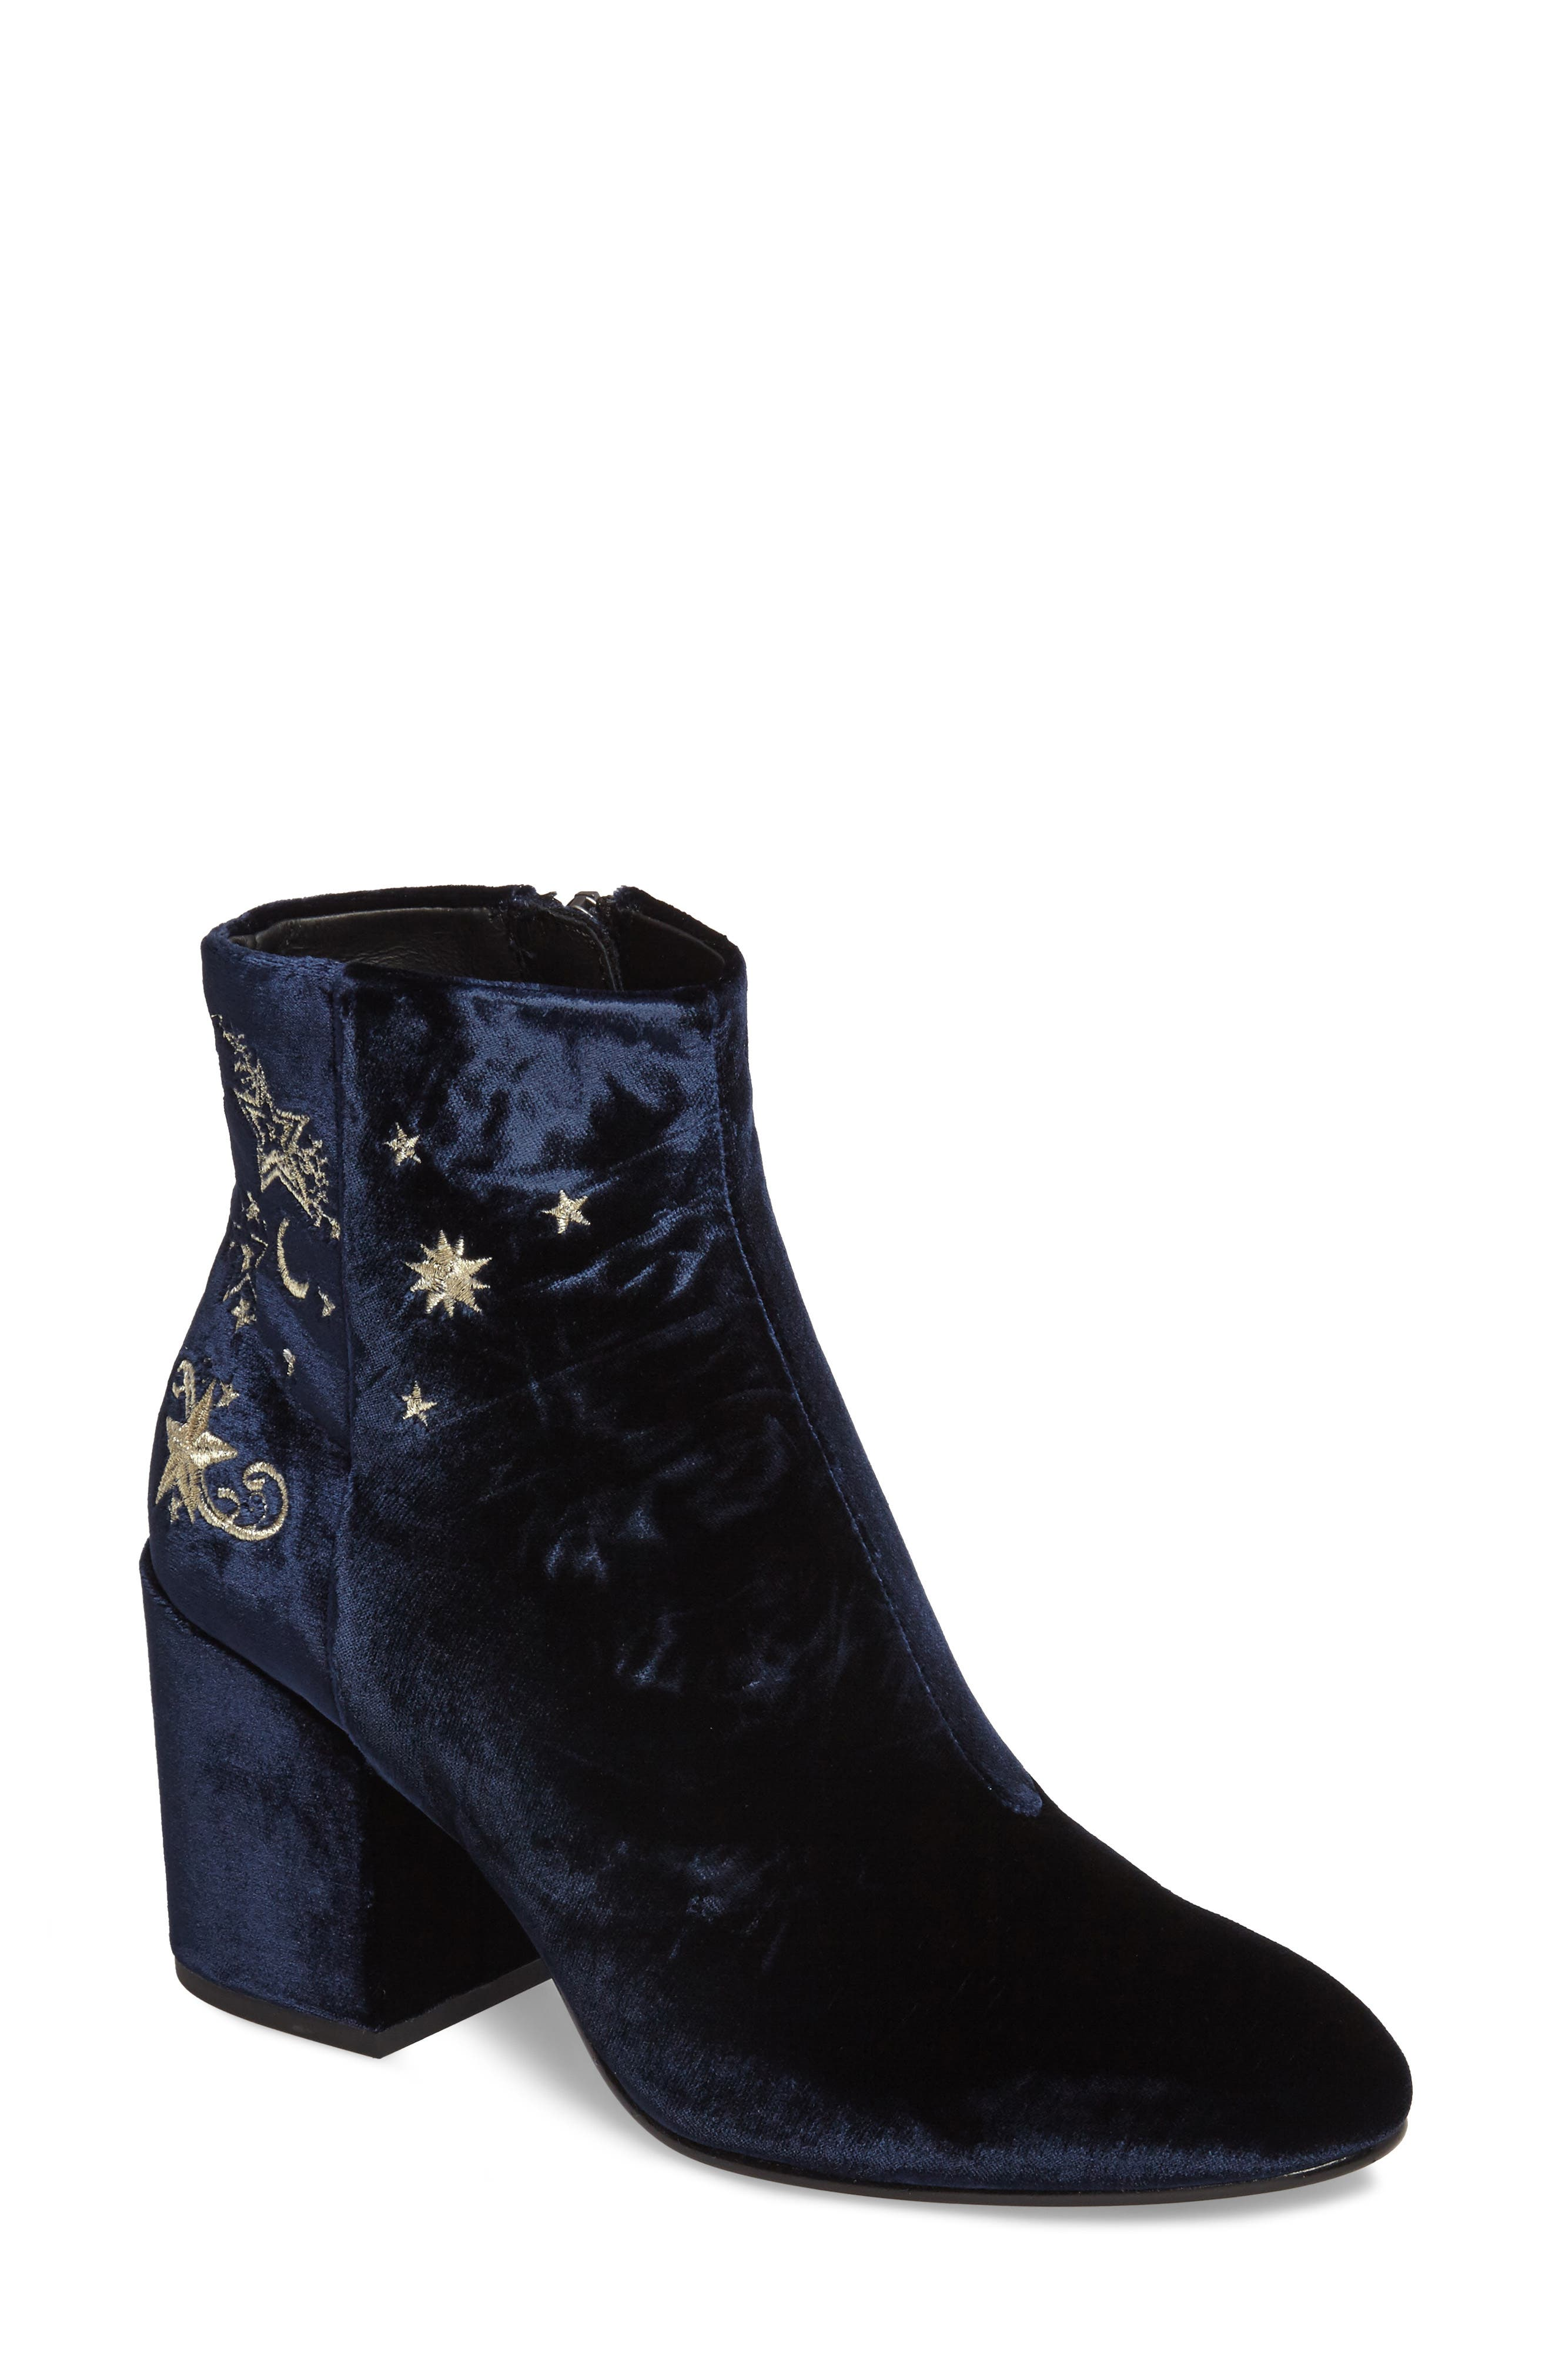 Elixir Embroidered Velvet Bootie,                             Main thumbnail 1, color,                             Midnight Fabric